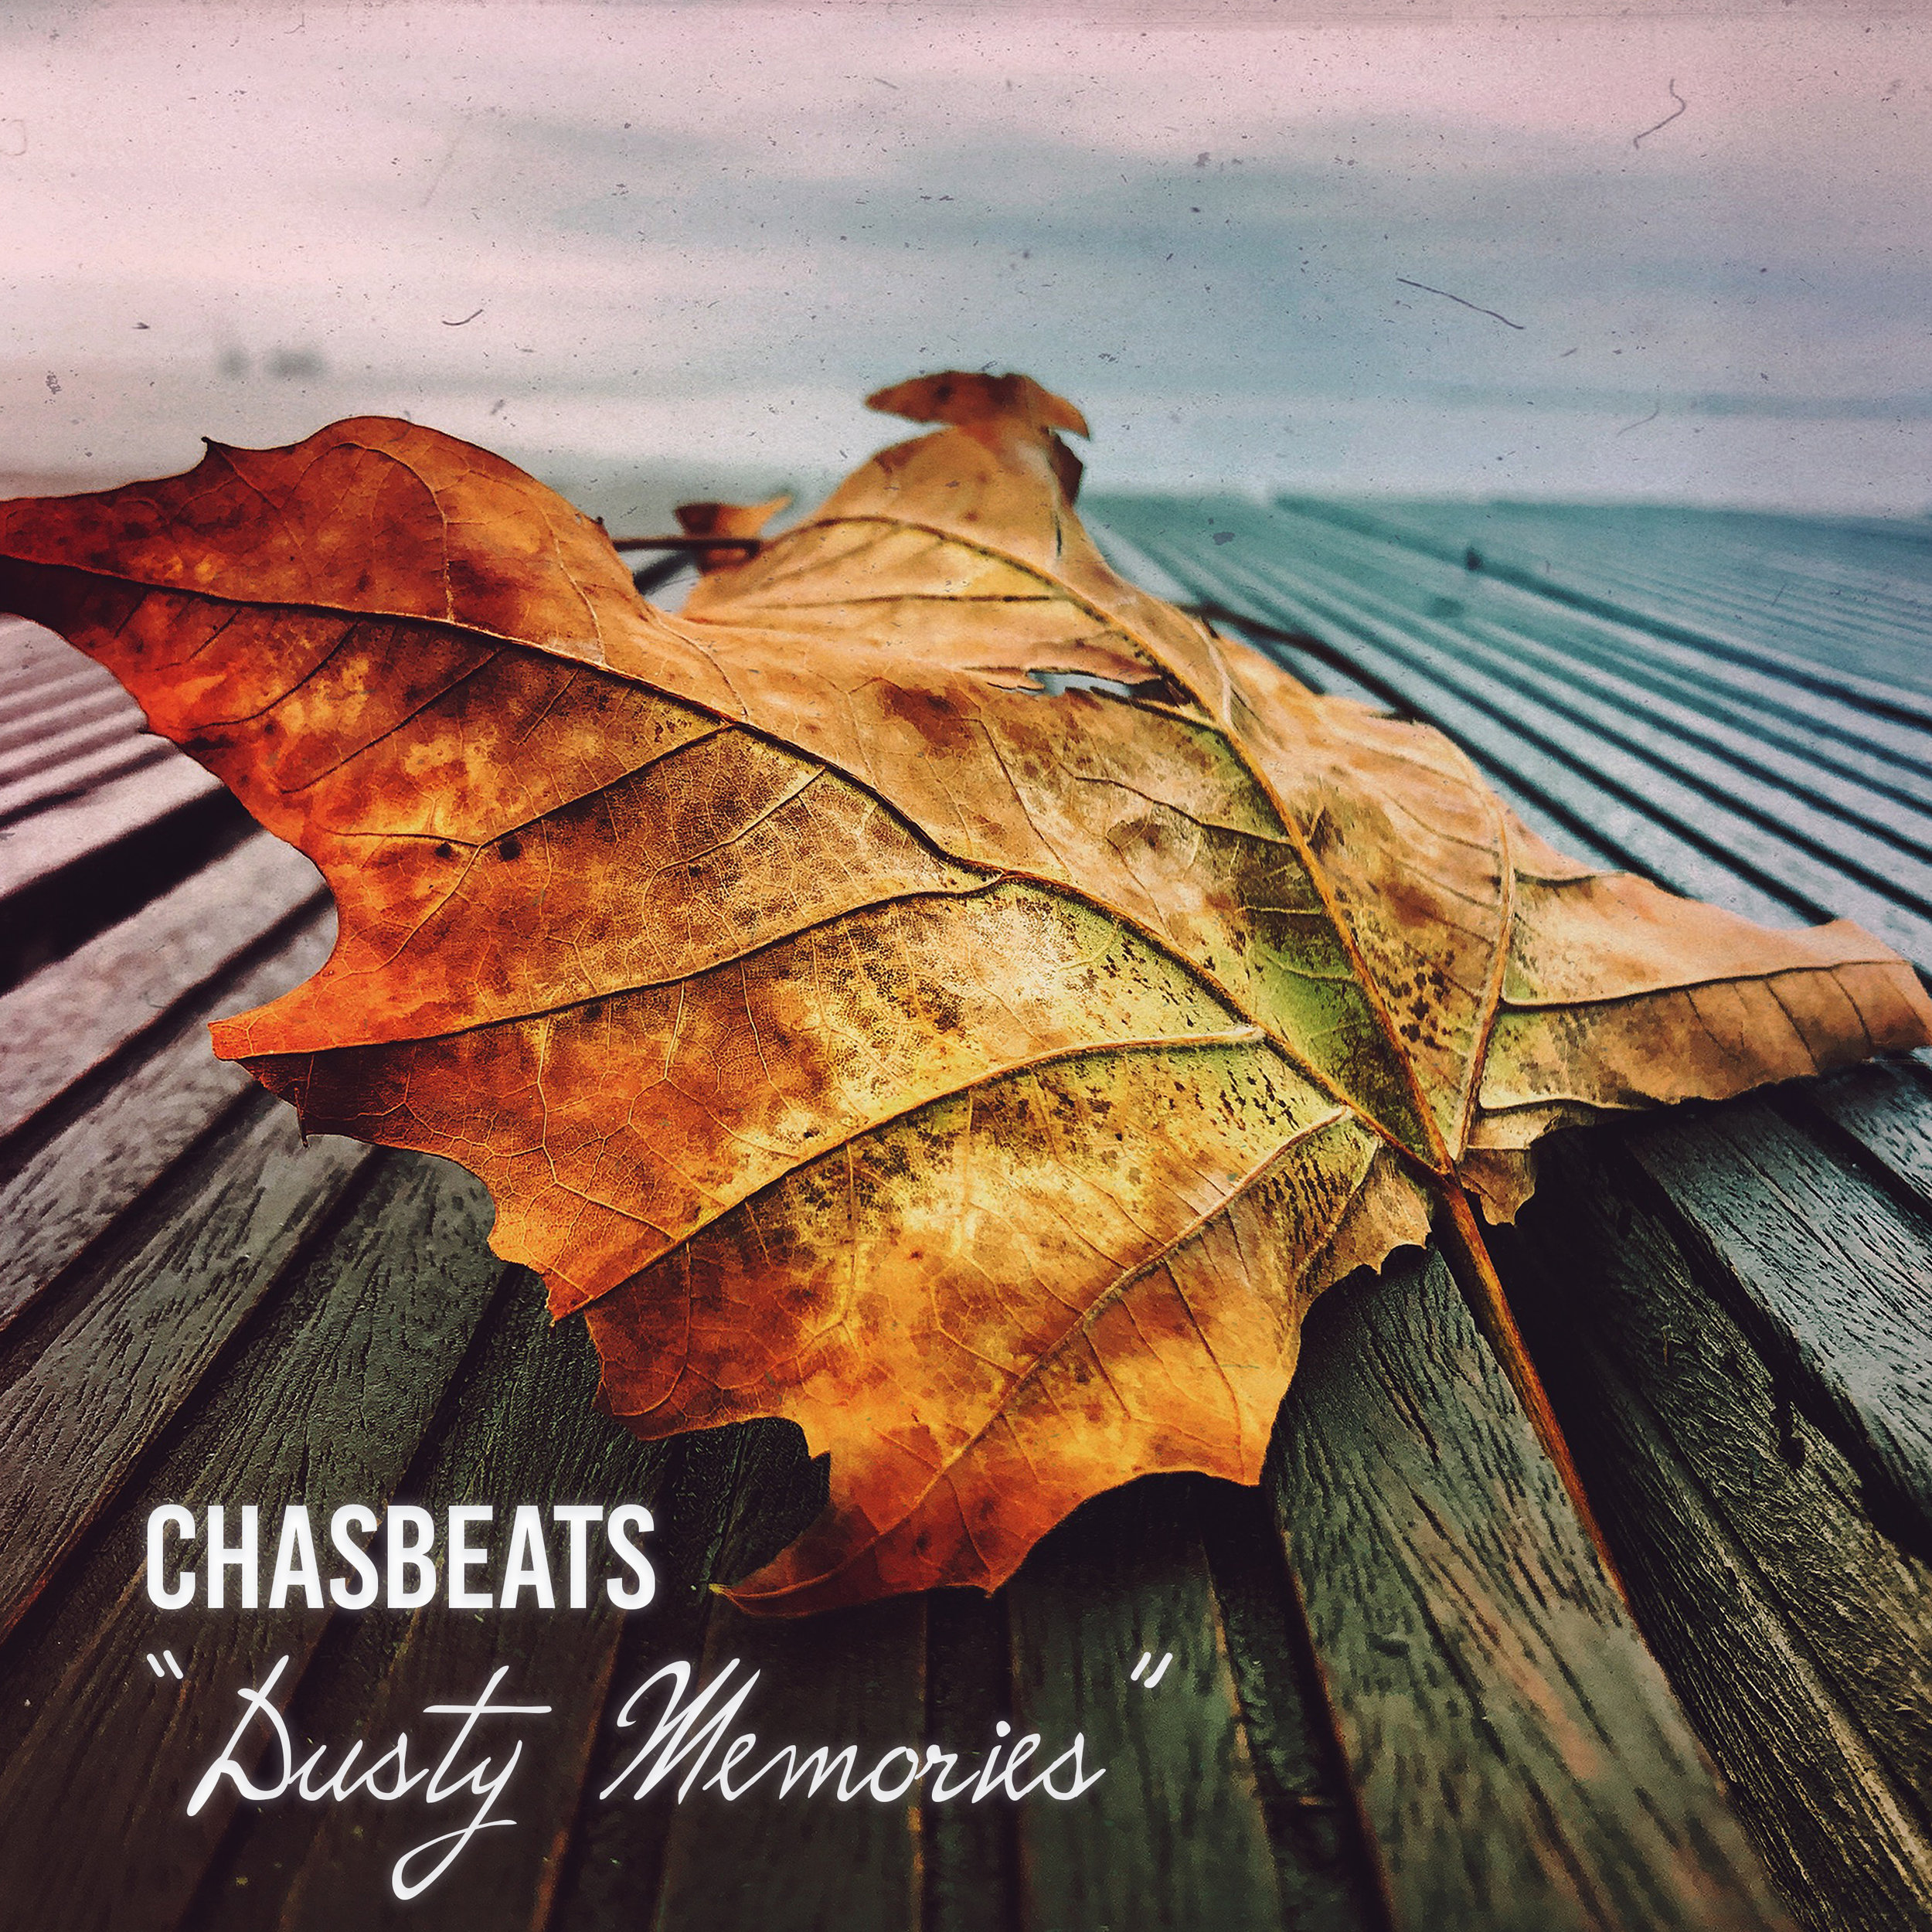 chasbeats - dusty memories - 3000pxl.jpg